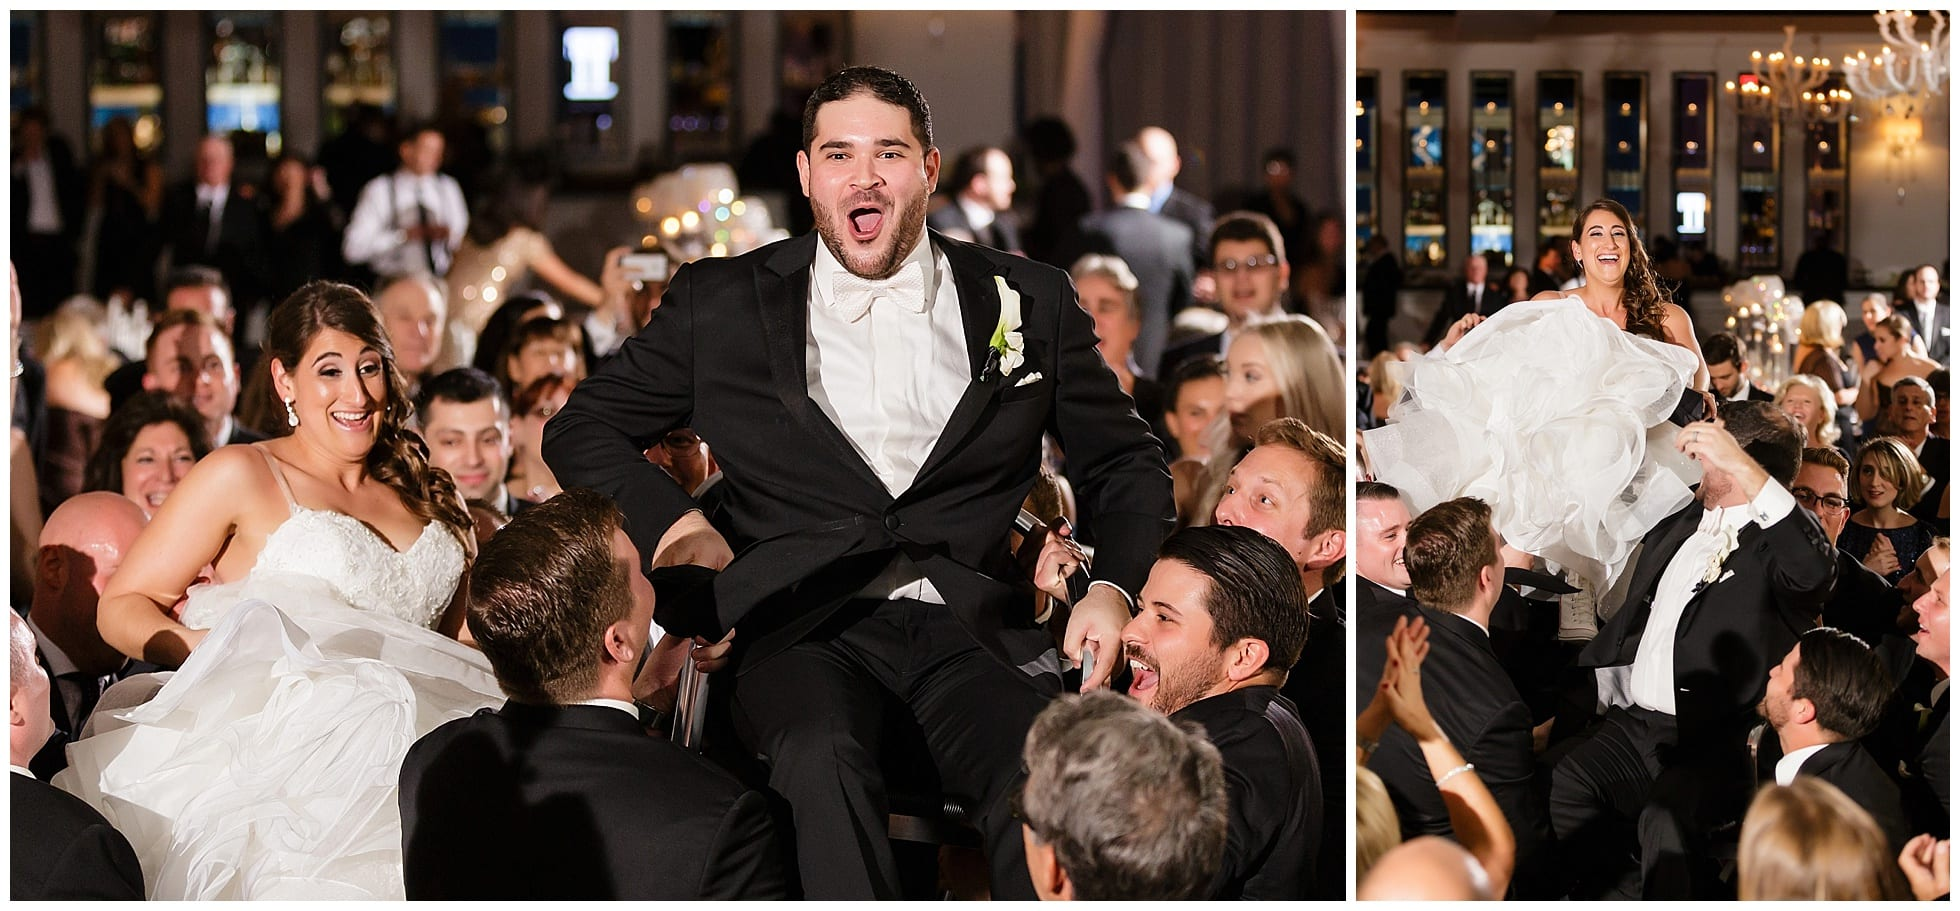 Elegant Black Tie Uk Wedding: Gorgeous Black Tie Wedding At Vie